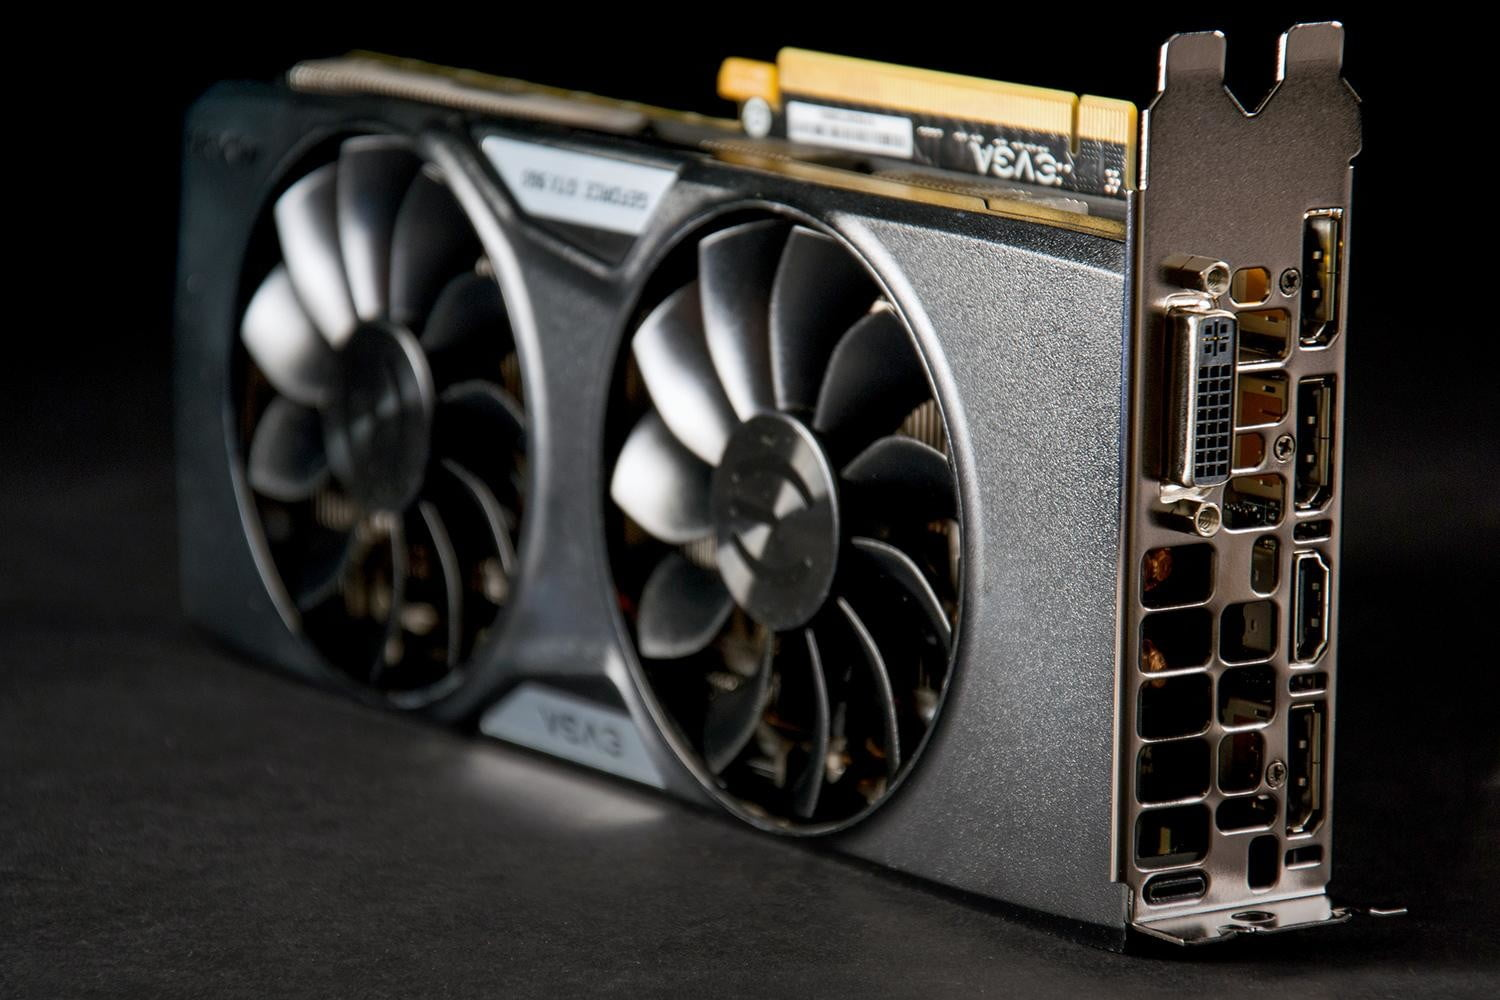 Here's How To Improve PC Game Performance to 60 FPS | Digital Trends